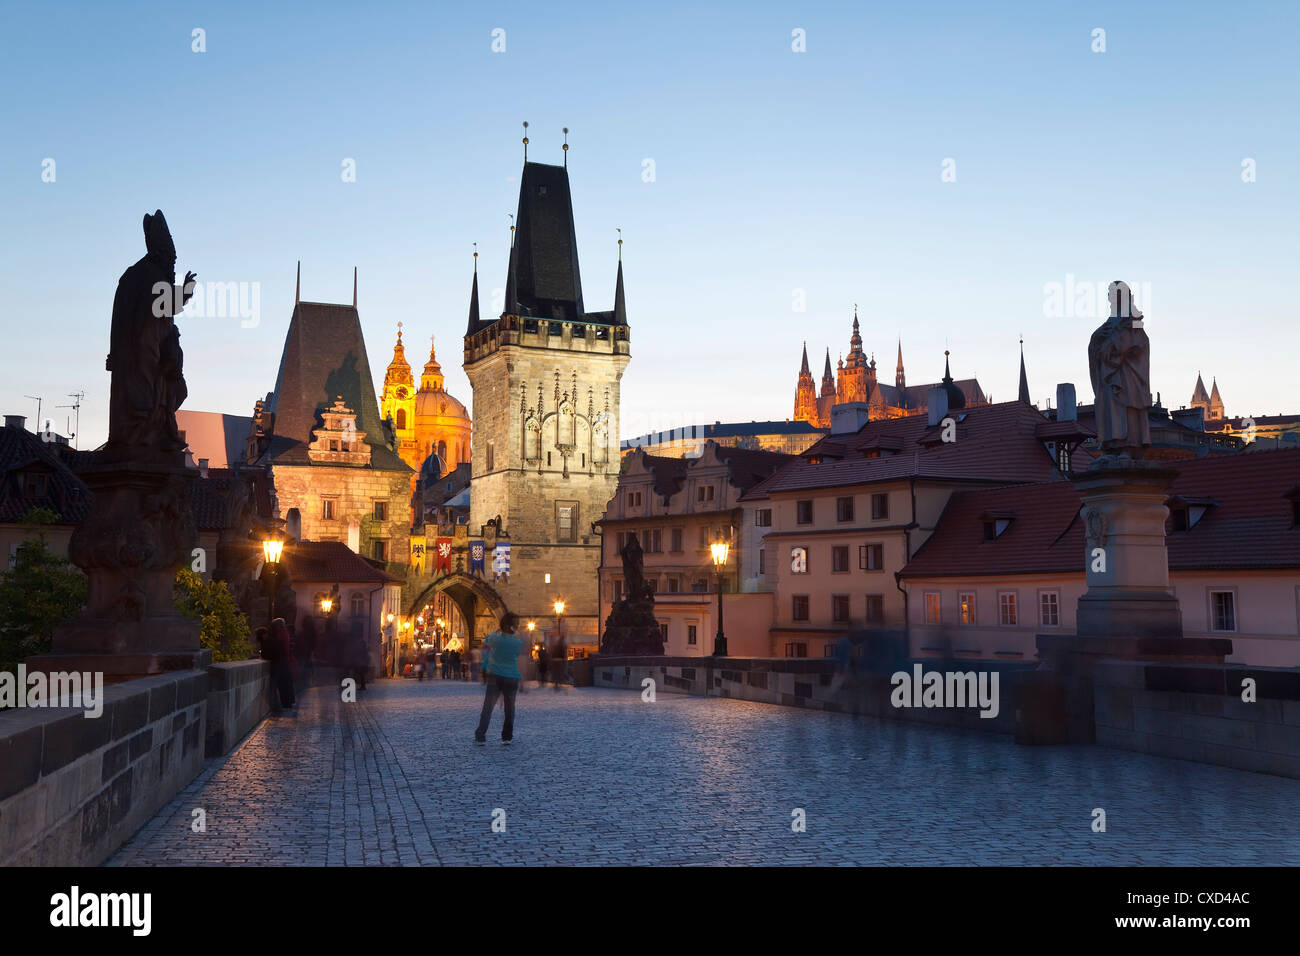 Charles Bridge, UNESCO World Heritage Site, Prague, Czech Republic, Europe - Stock Image